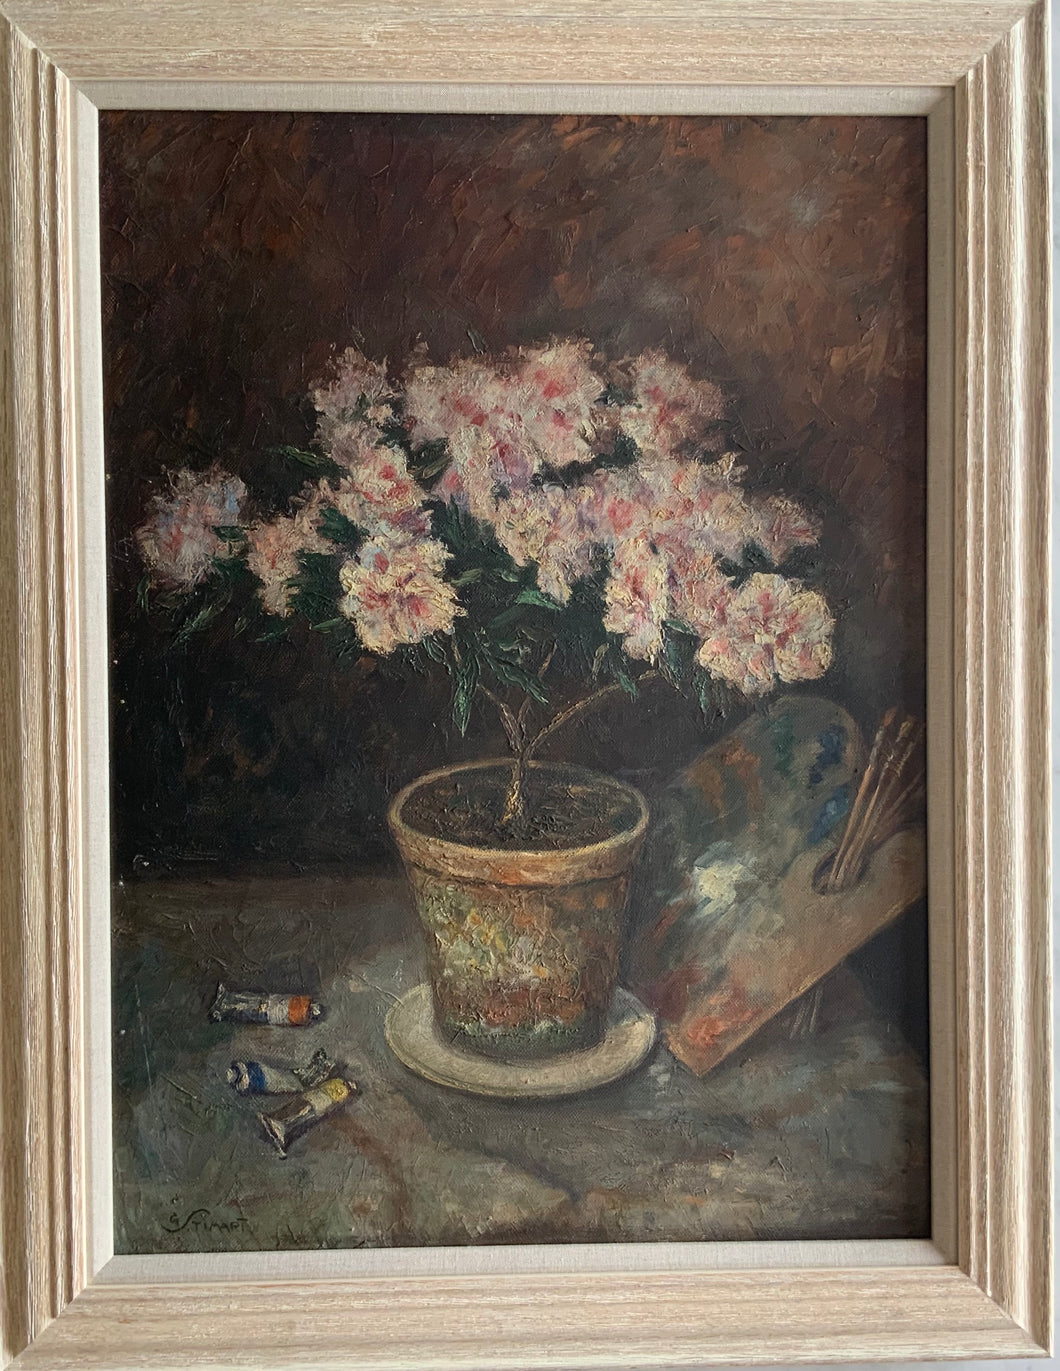 Oil painting on canvas: Pink flowers and palette (artist Georges Stimart, 1886-1952)